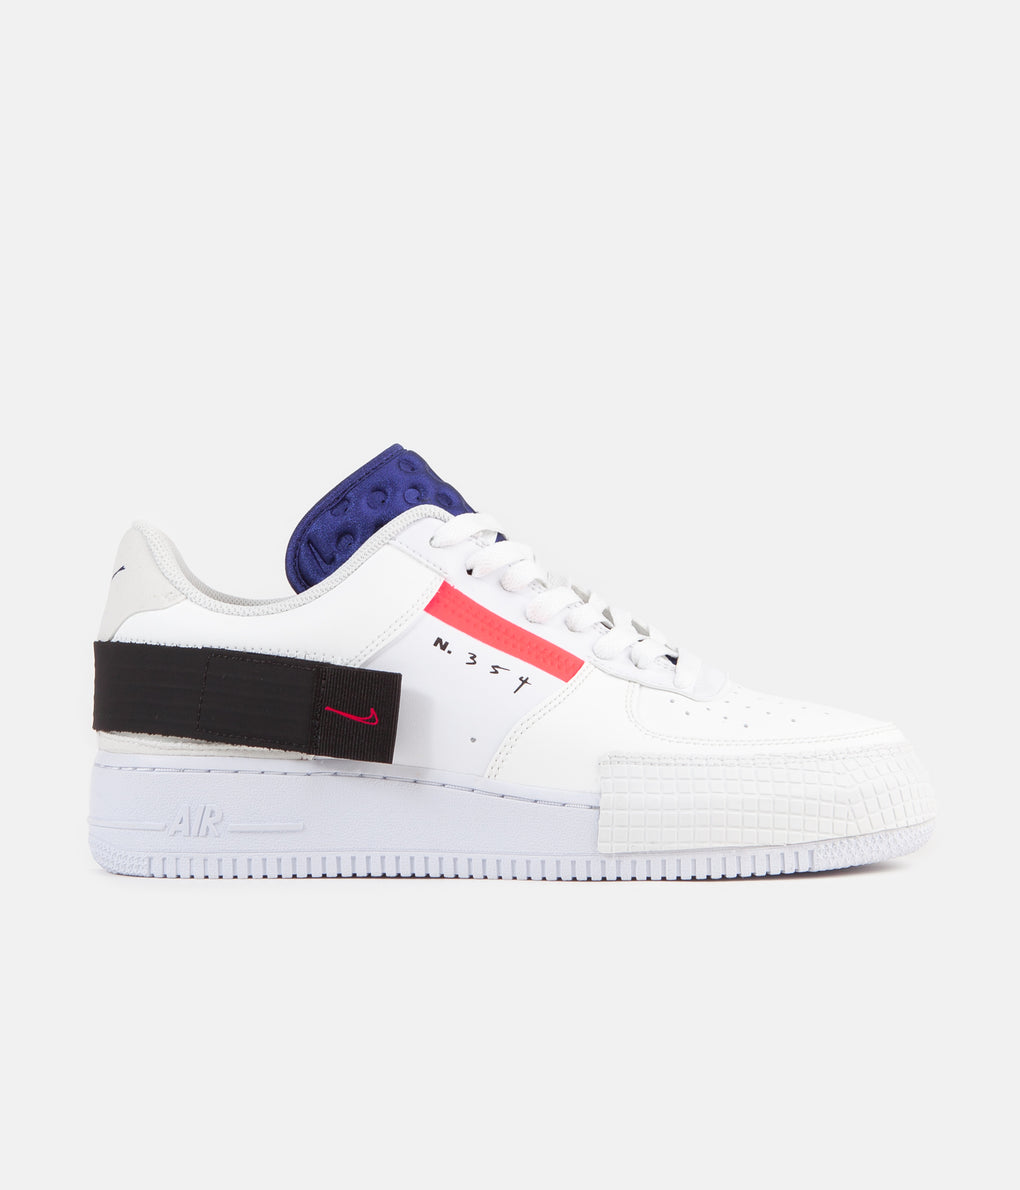 Nike Air Force 1 Type Shoes - Summit White / Red Orbit - White - Black